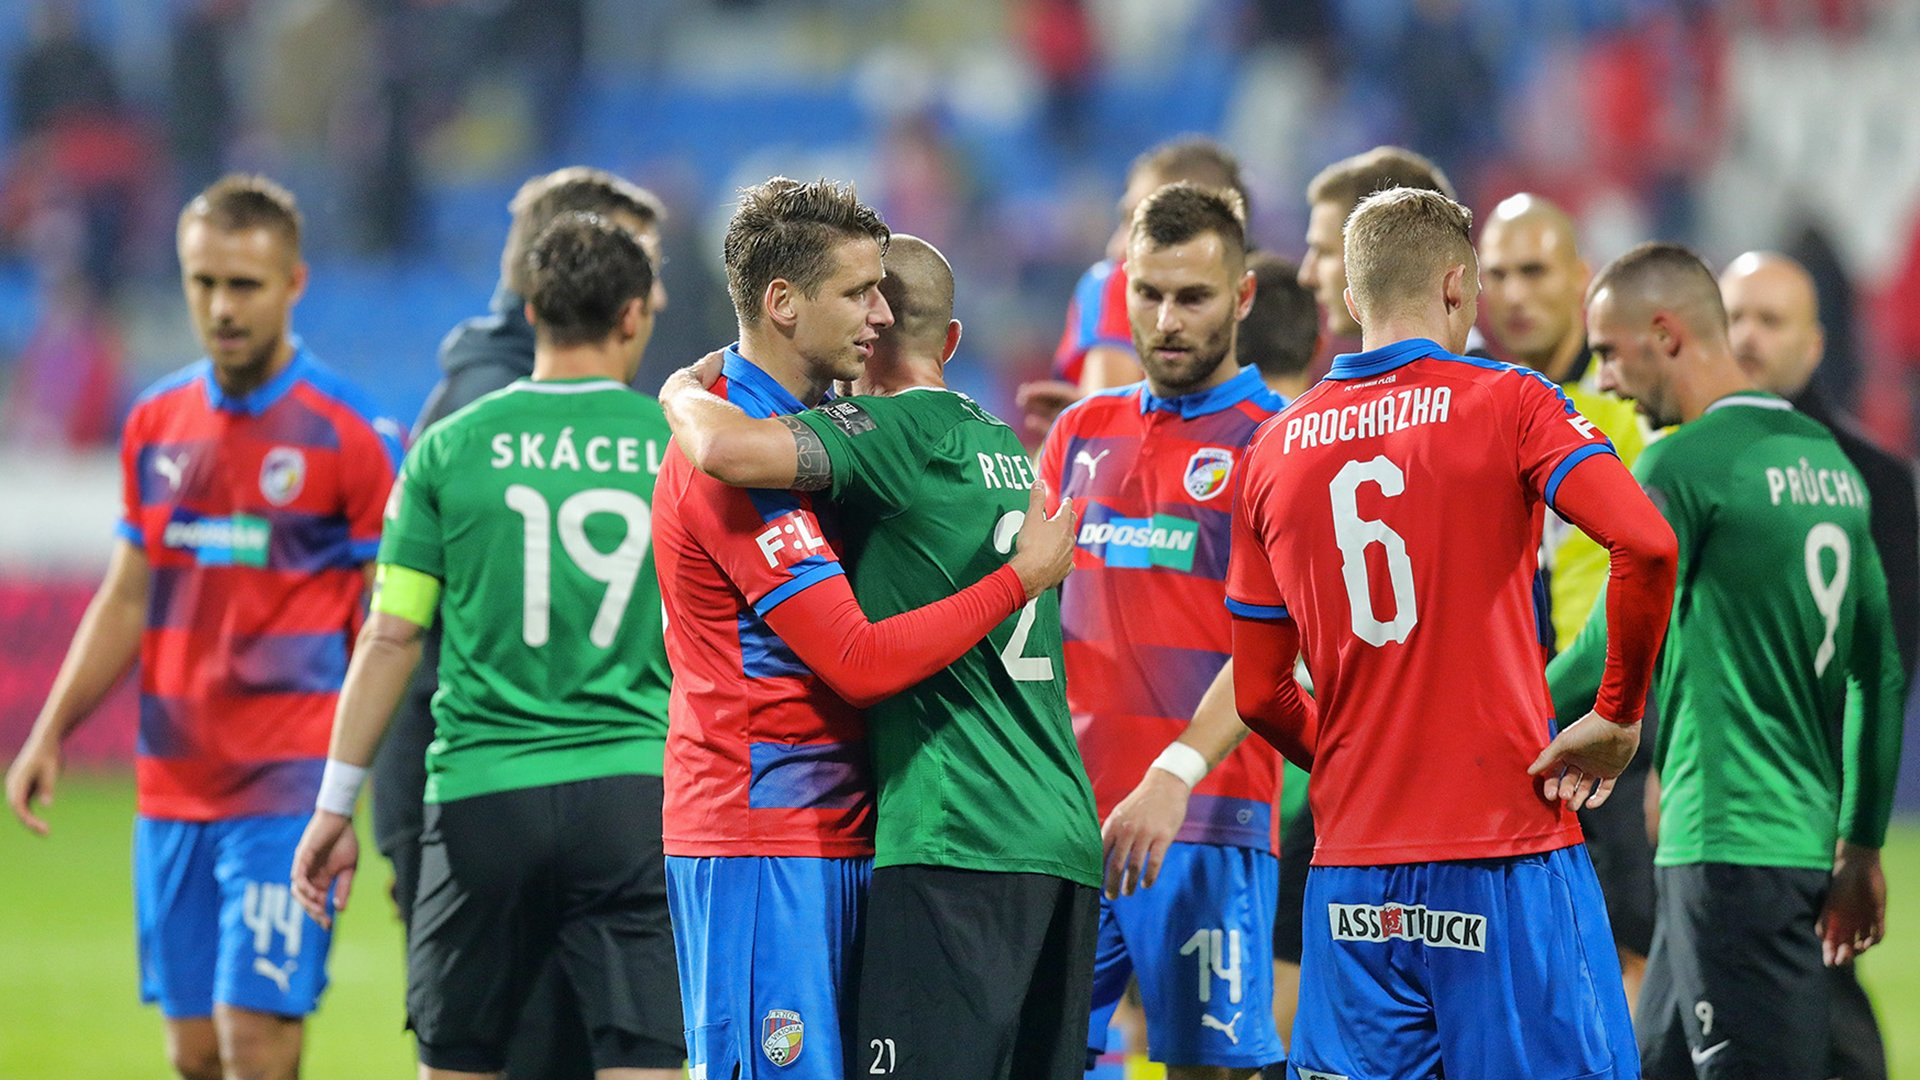 Viktoria couldn't beat Příbram and takes only one point for 1-1 draw